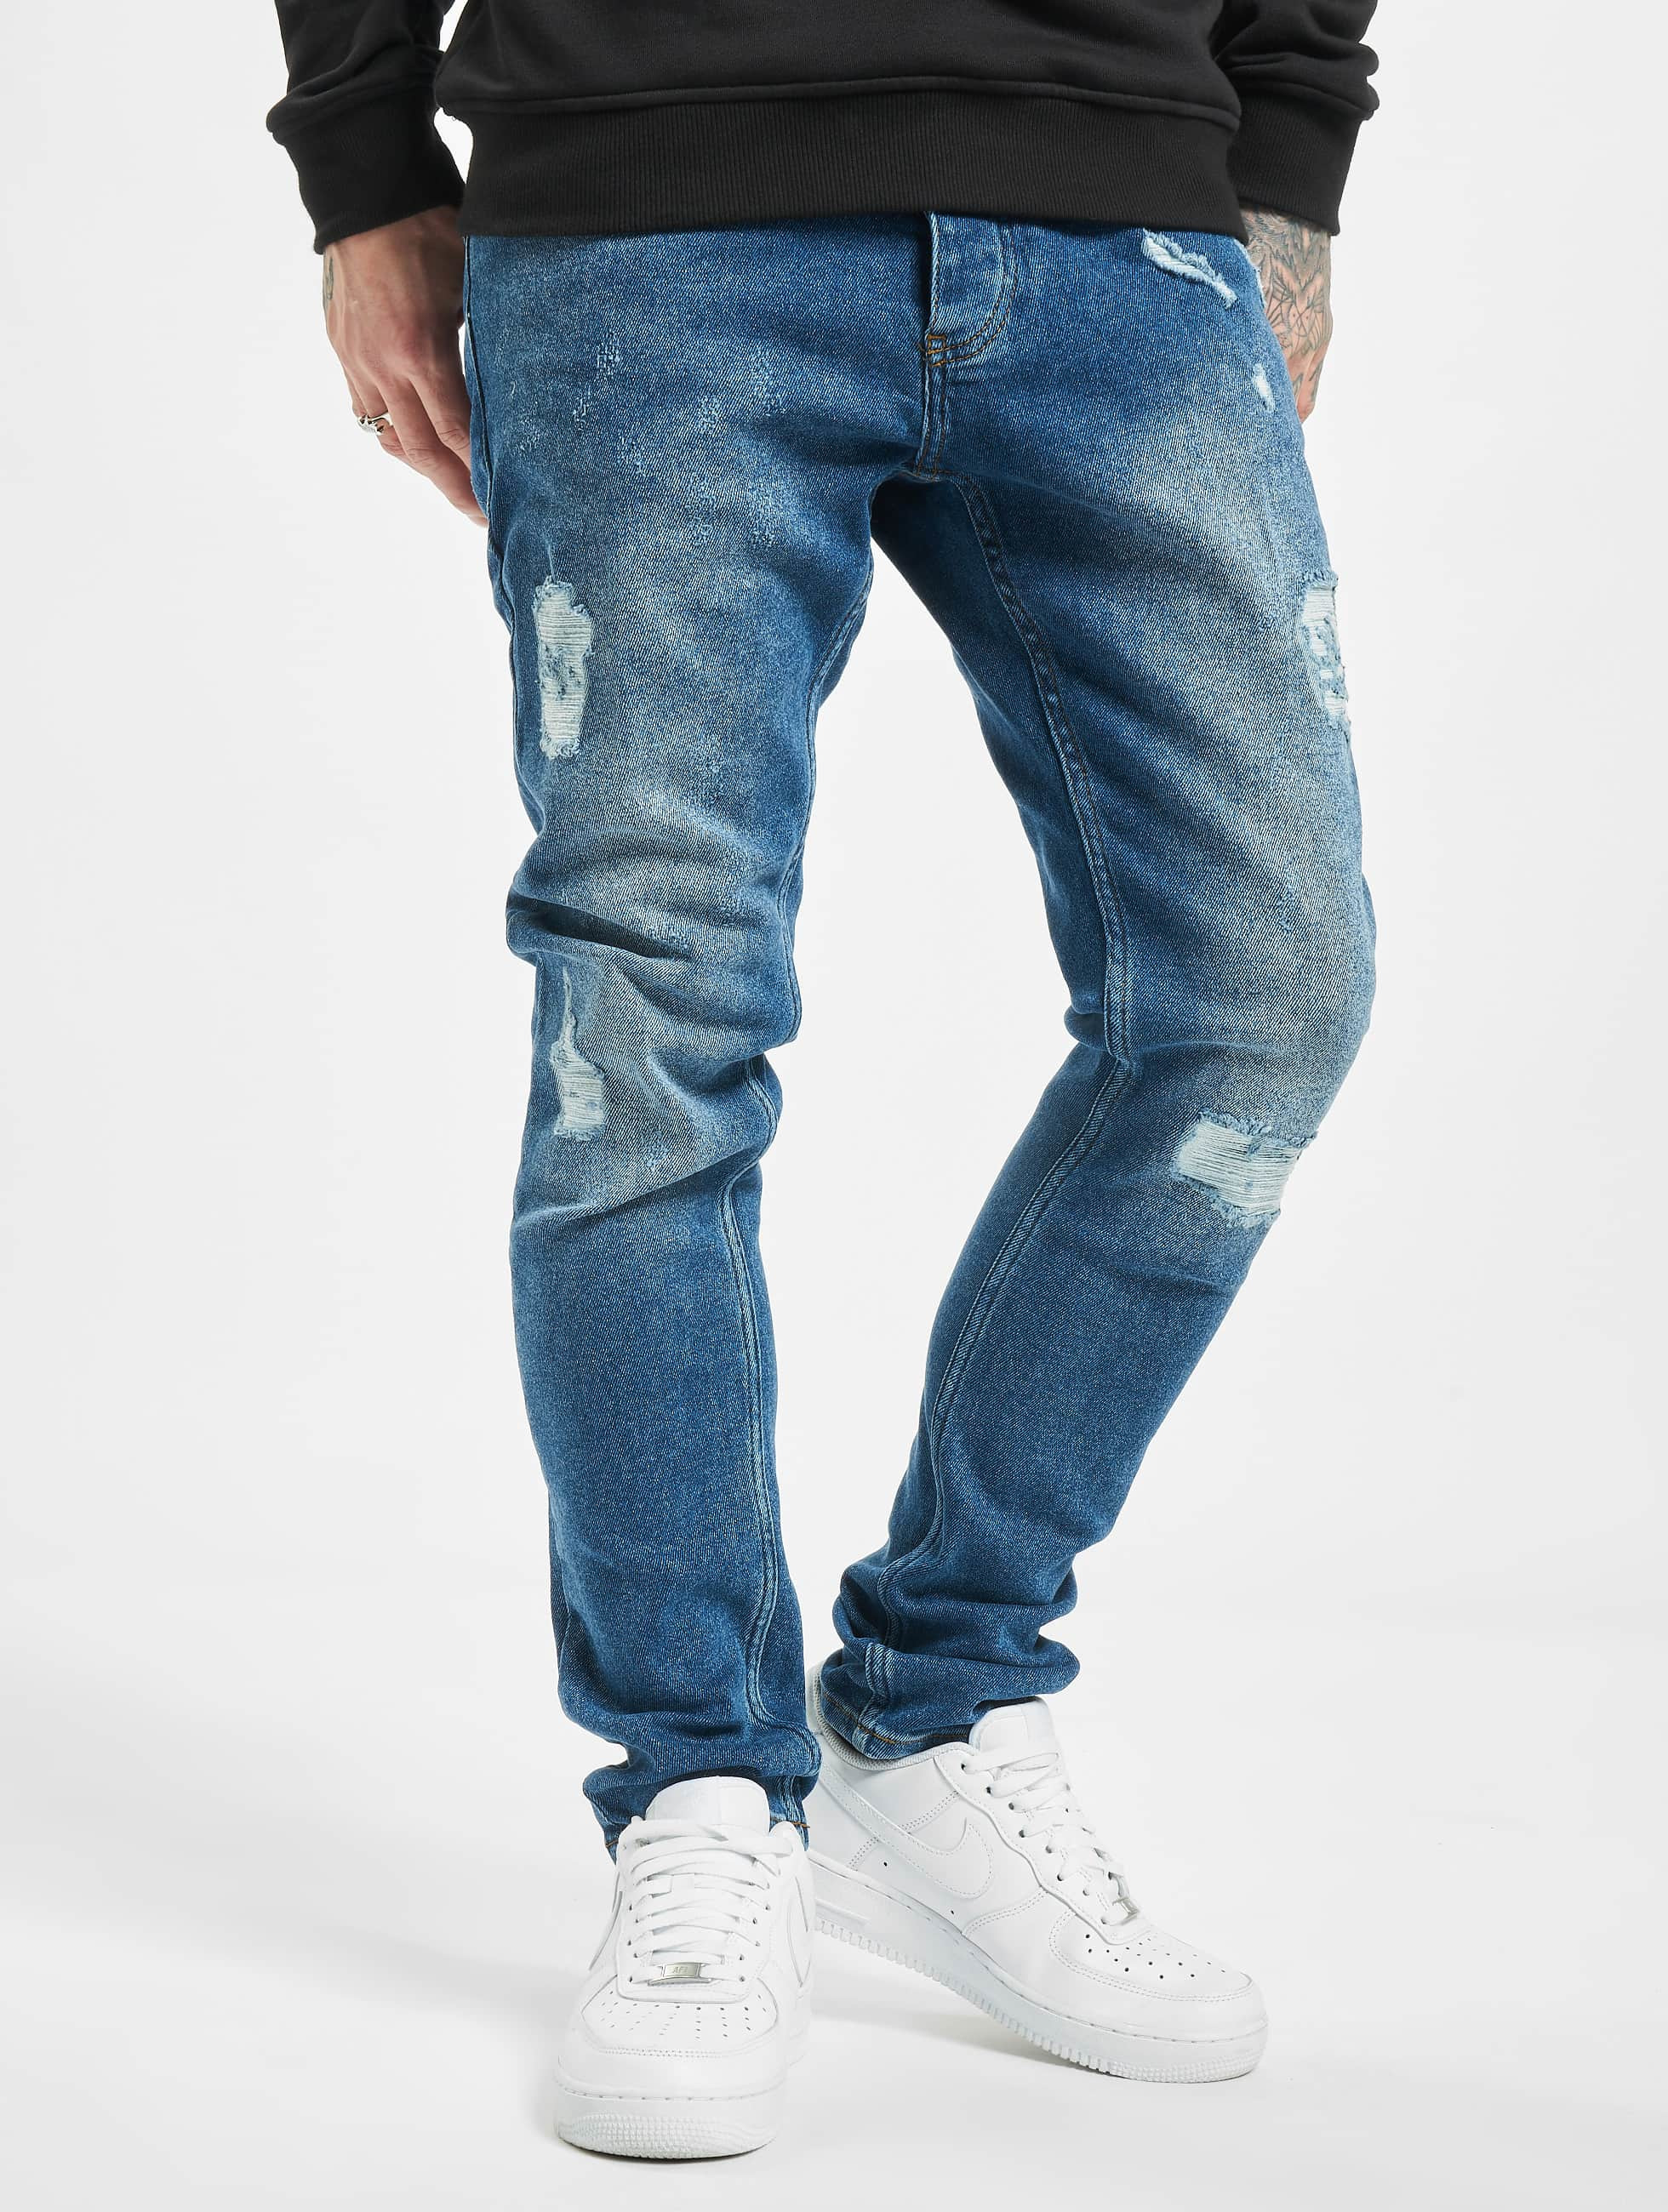 2Y / Slim Fit Jeans Hawa in blue W 30